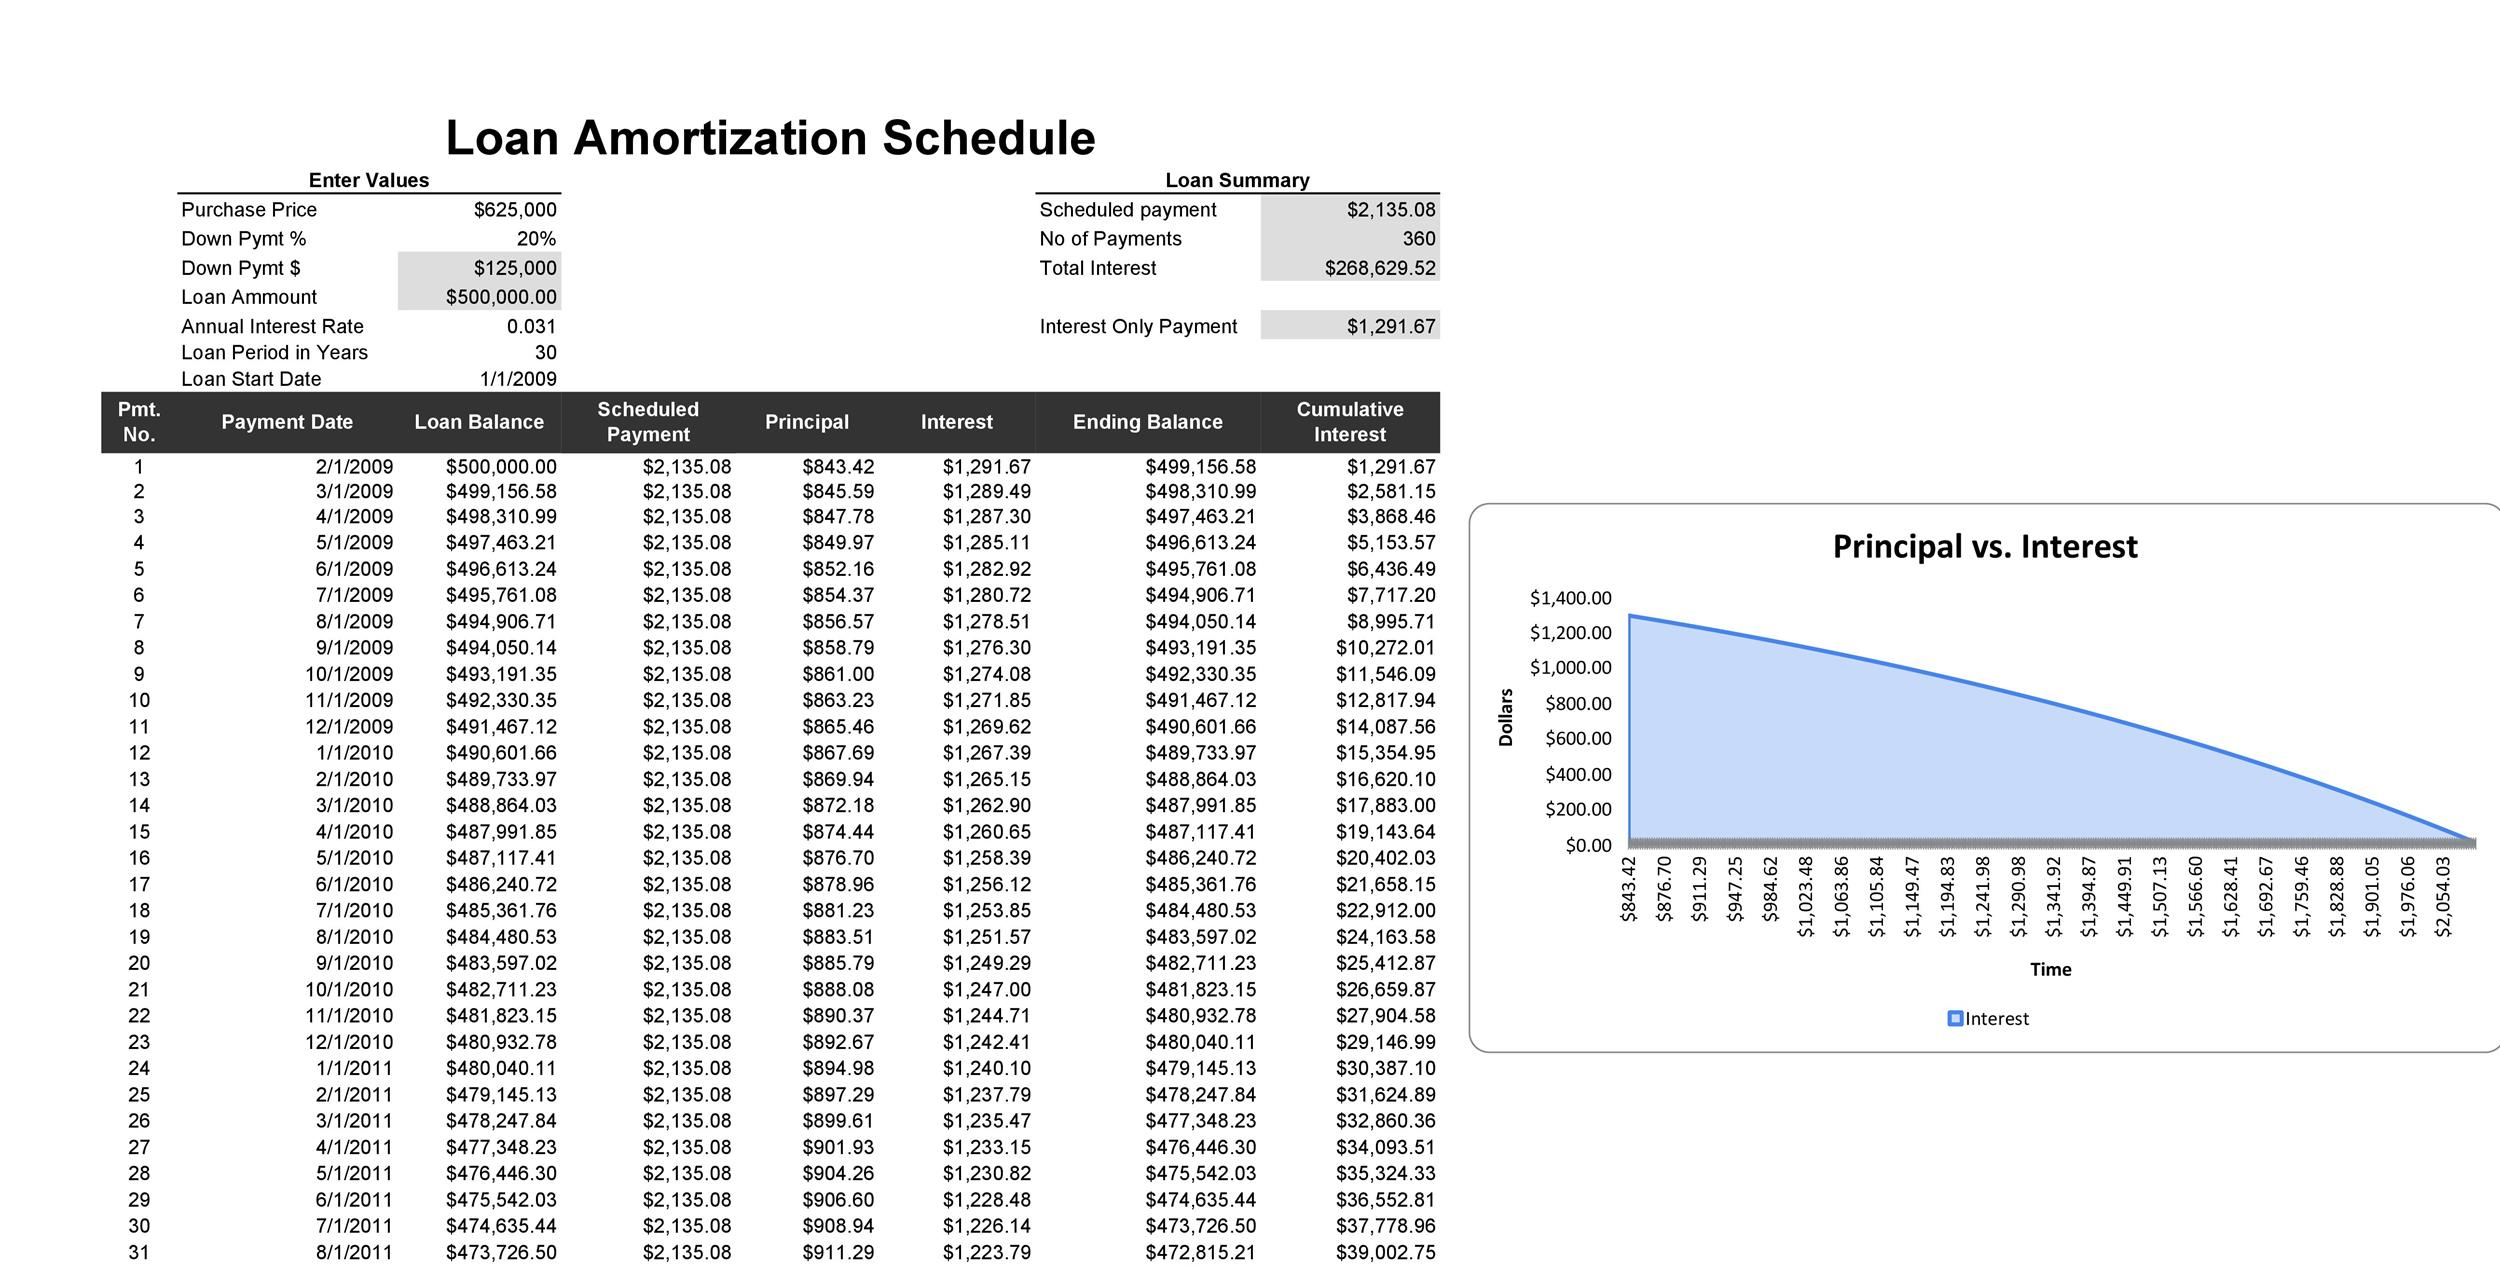 amortization schedule template - Selol-ink - Sample Schedules - Amortization Schedule Excel